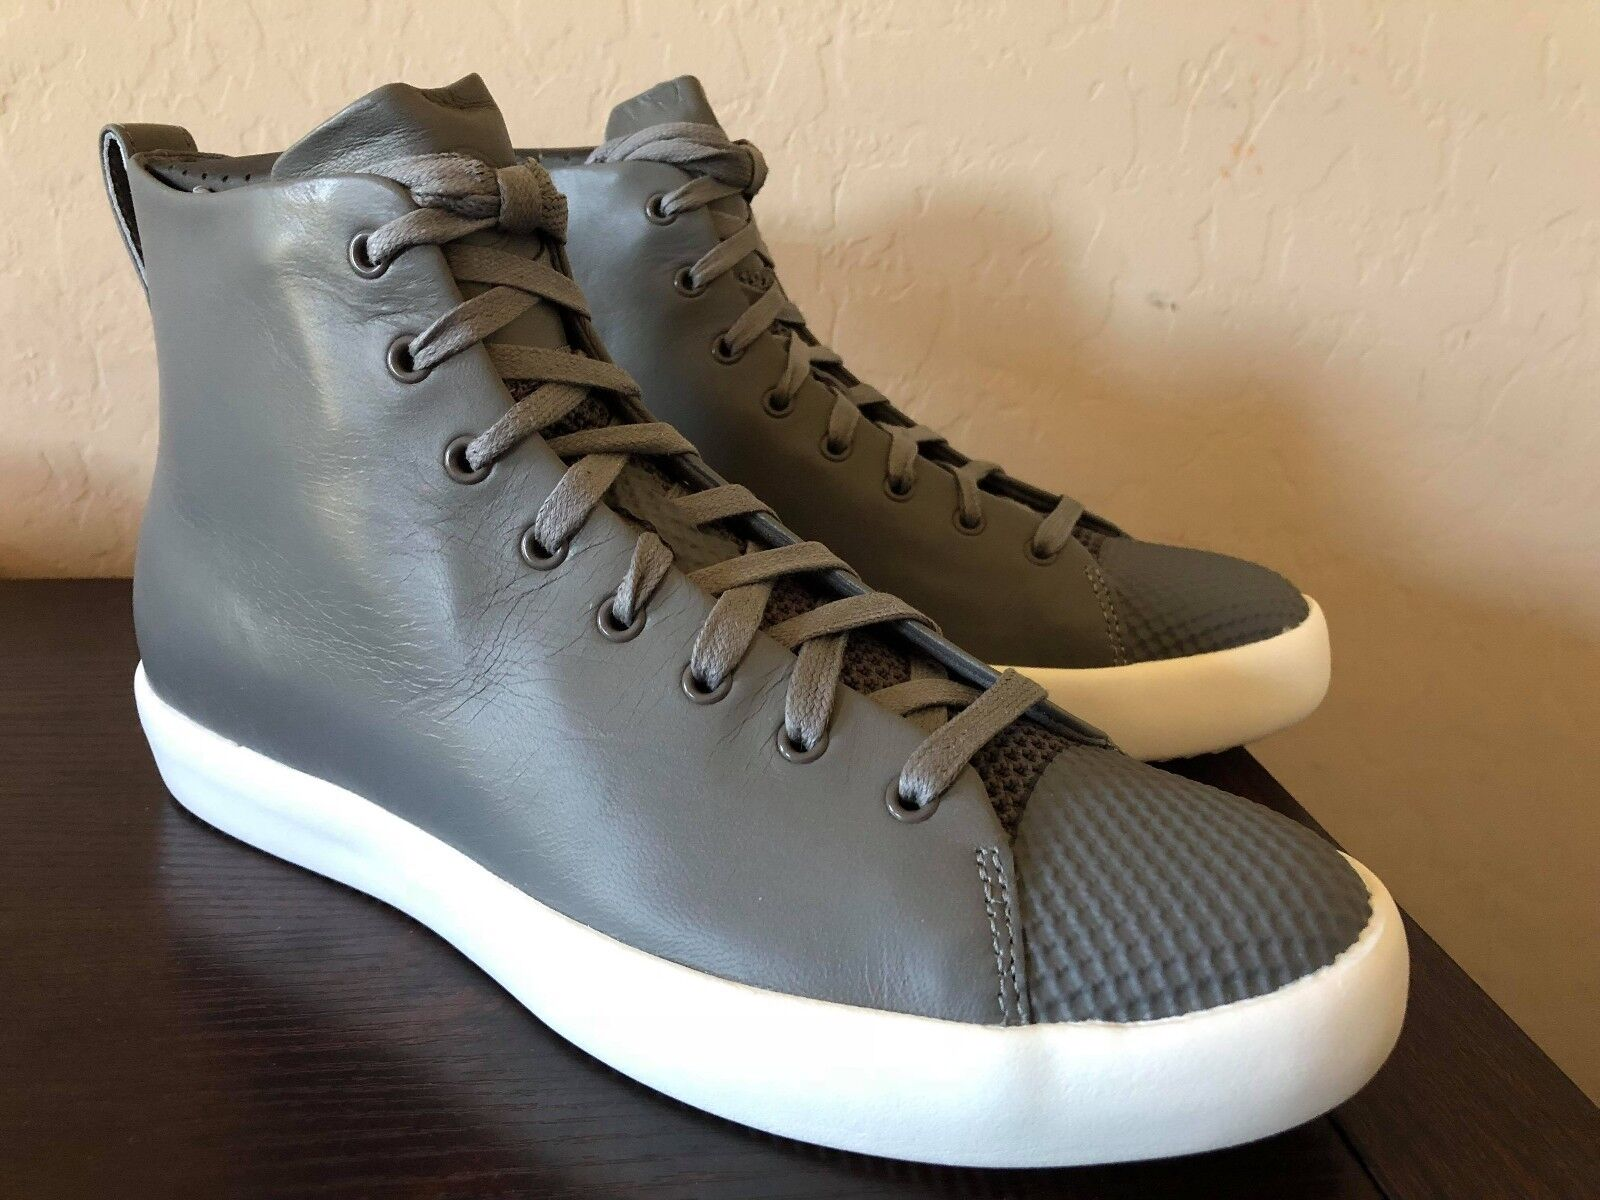 Converse Chuck Taylor ALL STAR MODERN HI SHOES size 9  140 CHARCOAL GREY